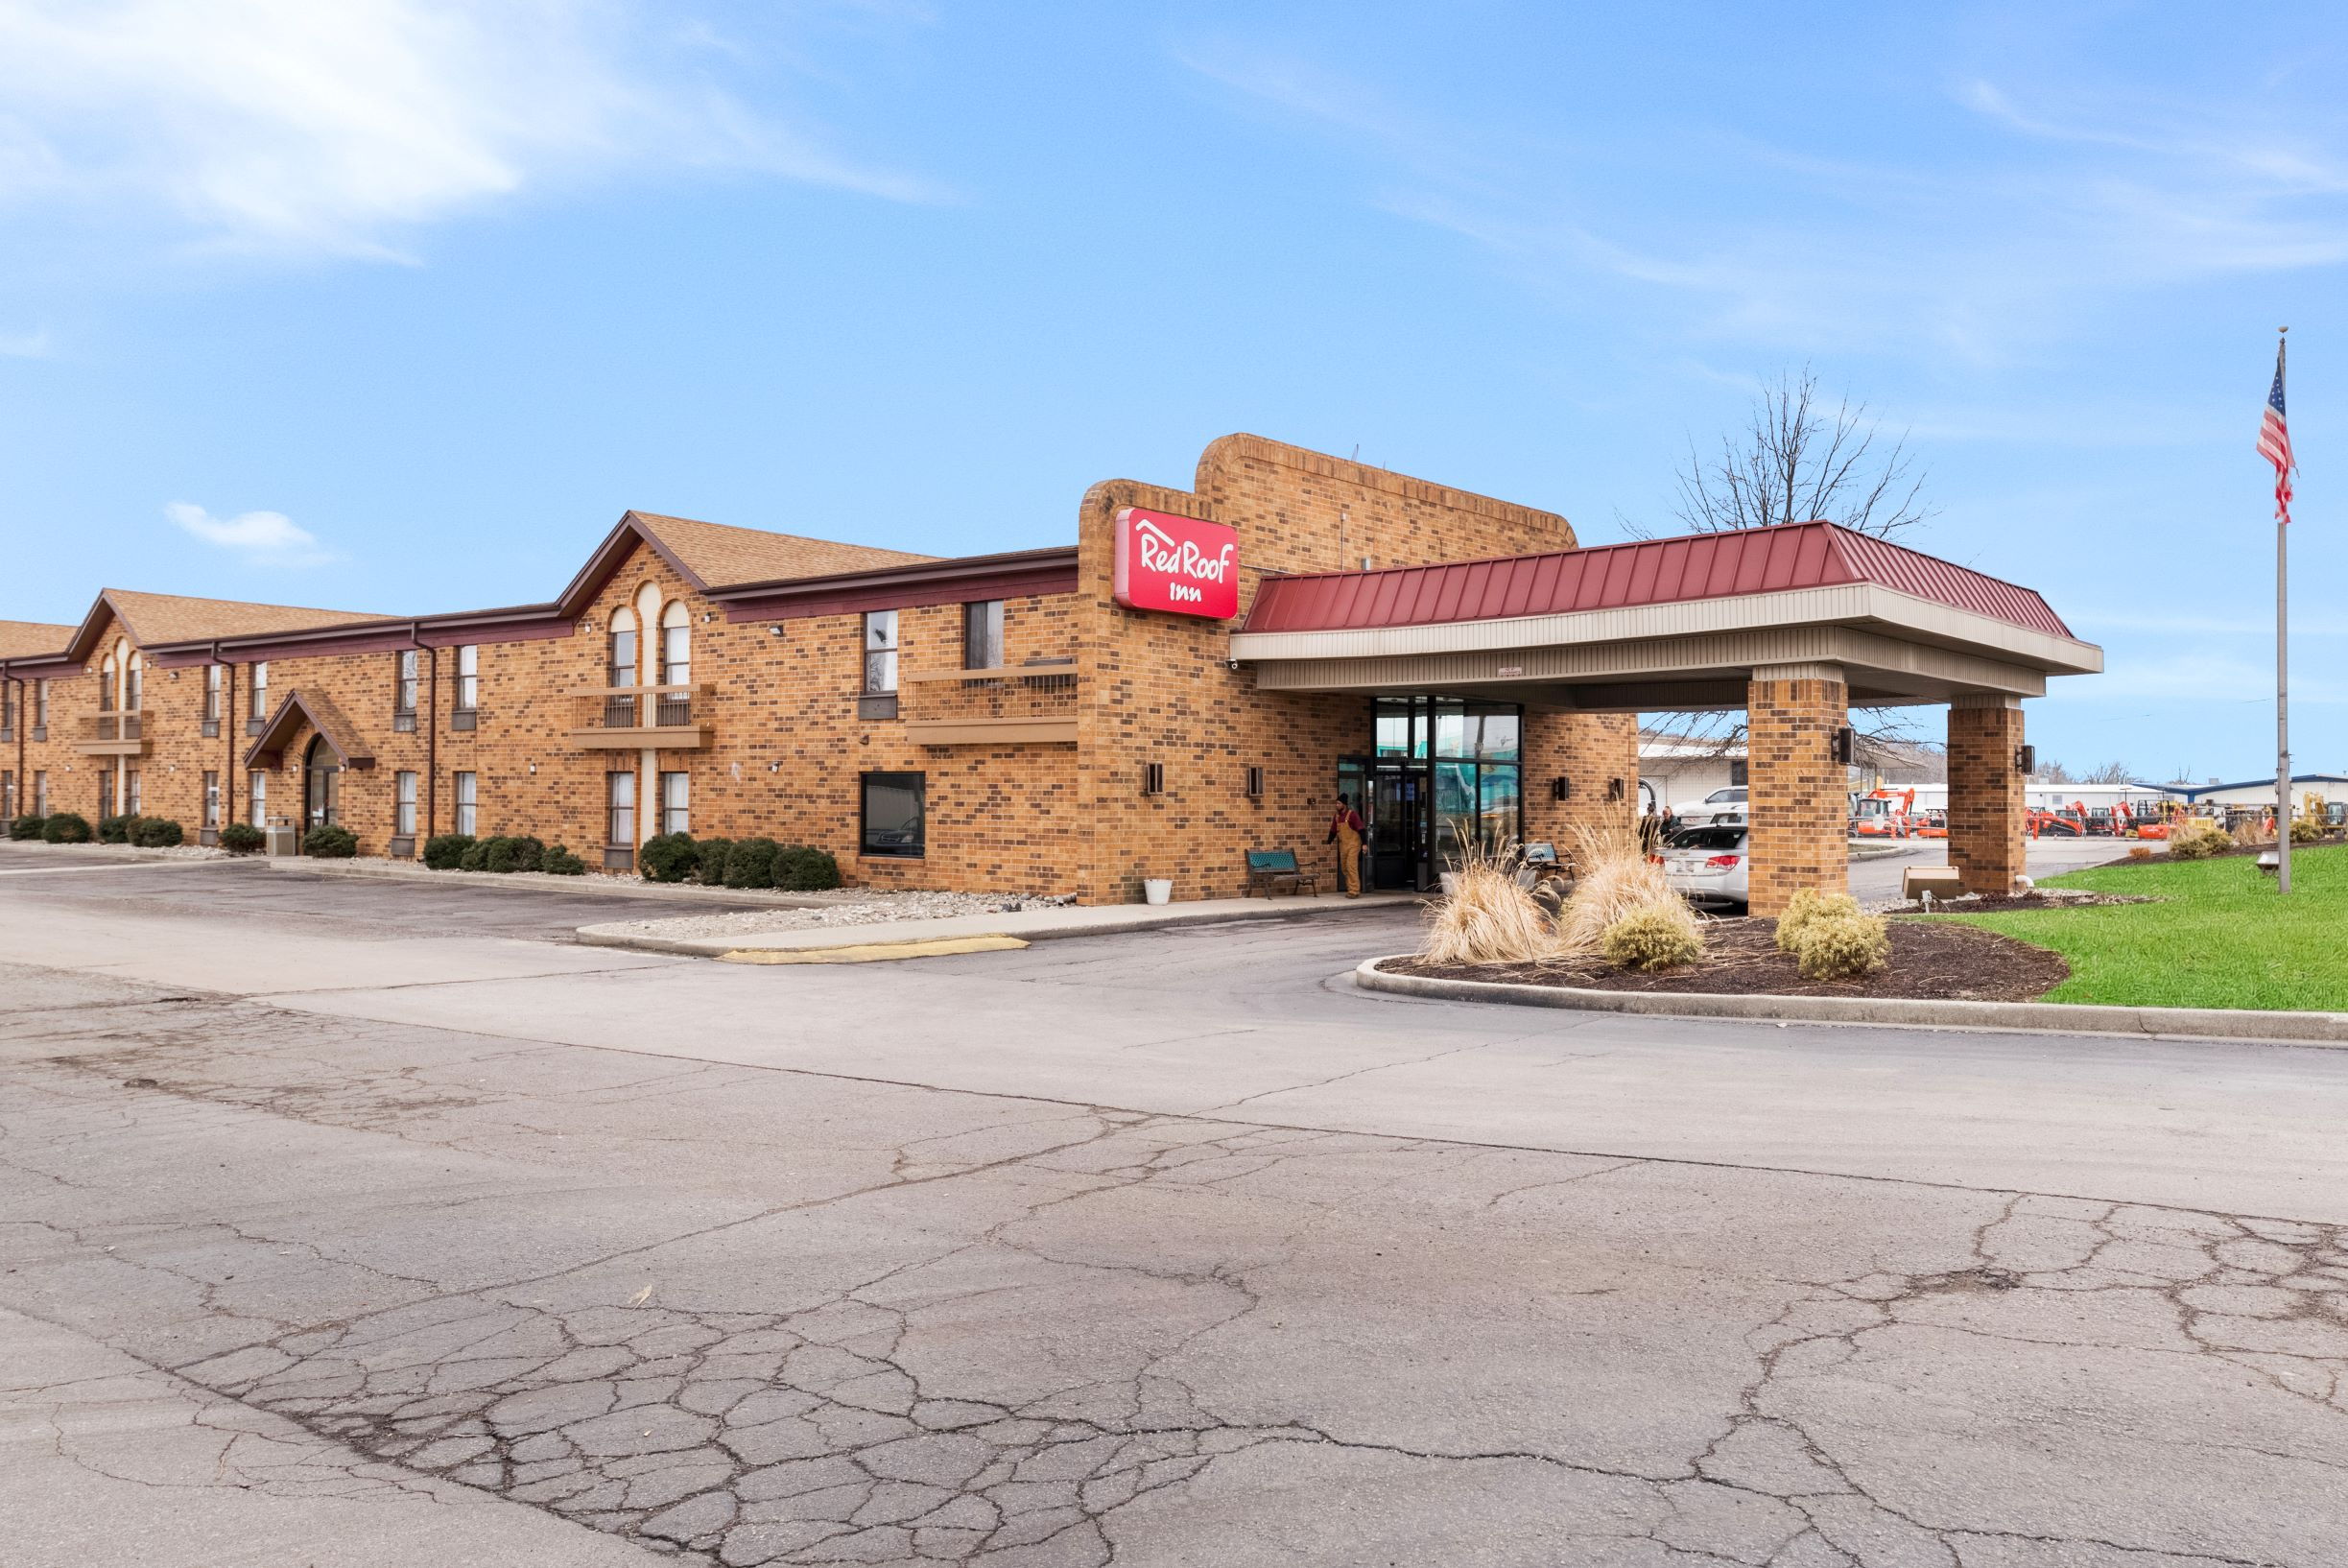 http://memorialcoliseum.com/images/Images/Where_to_Stay_Images/Red_Roof_Inn/RRI0339_Exterior_1-2.jpg